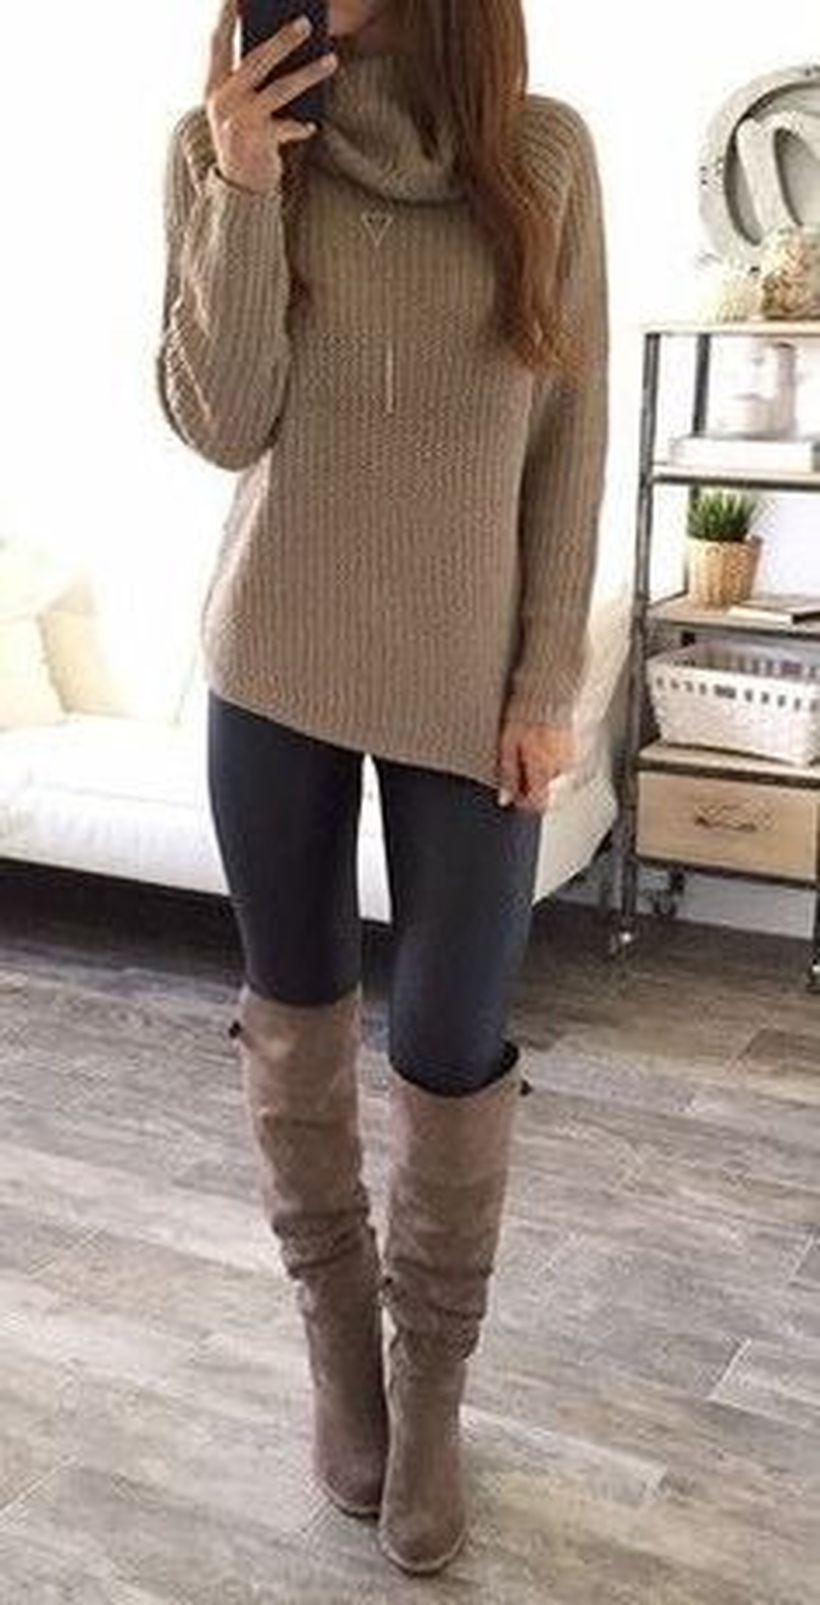 Fashionable outfit style for winter 2017 32